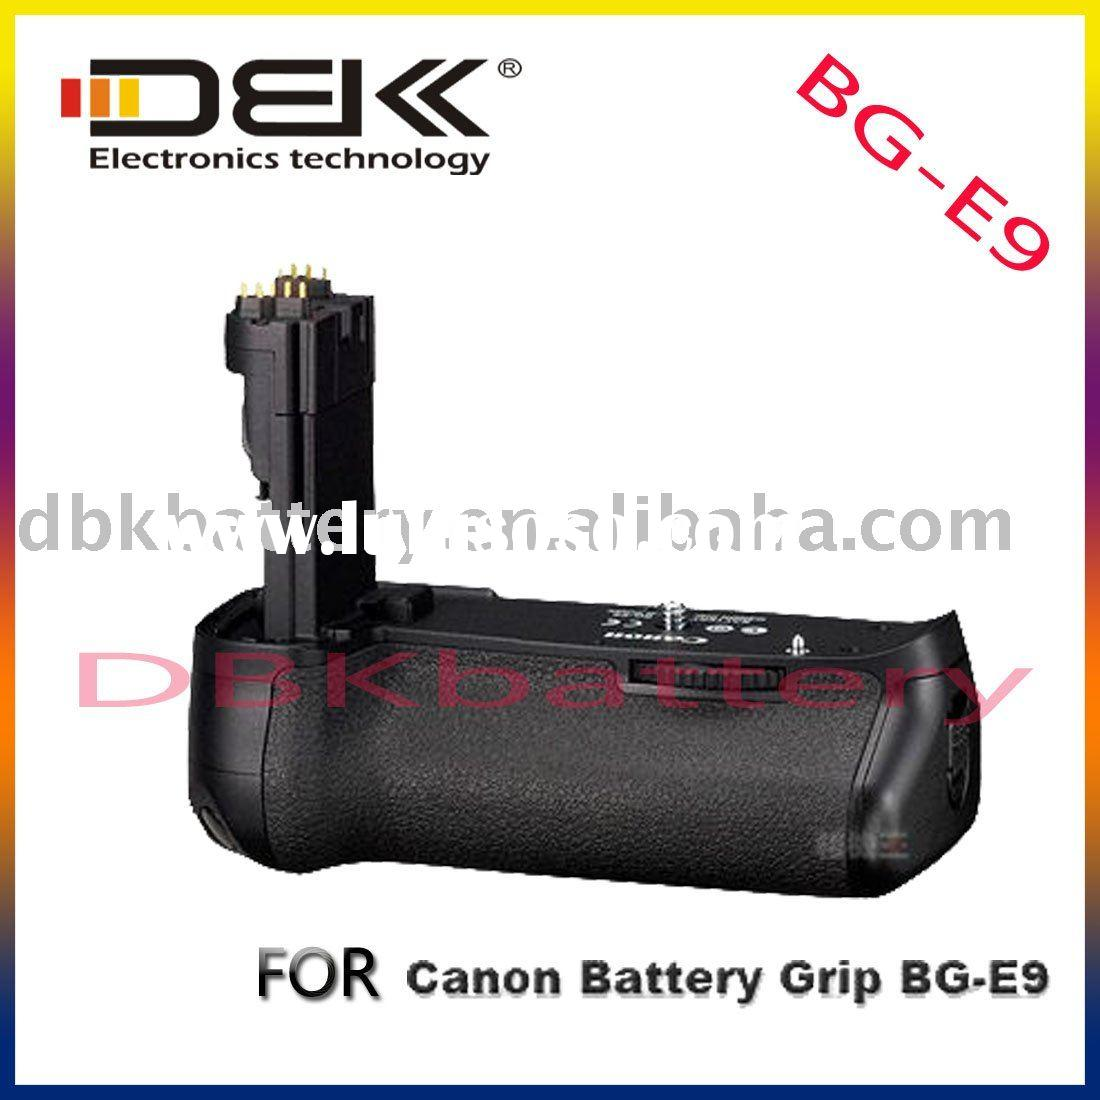 NEW BATTERY GRIP BG-E9 For Canon EOS 60D